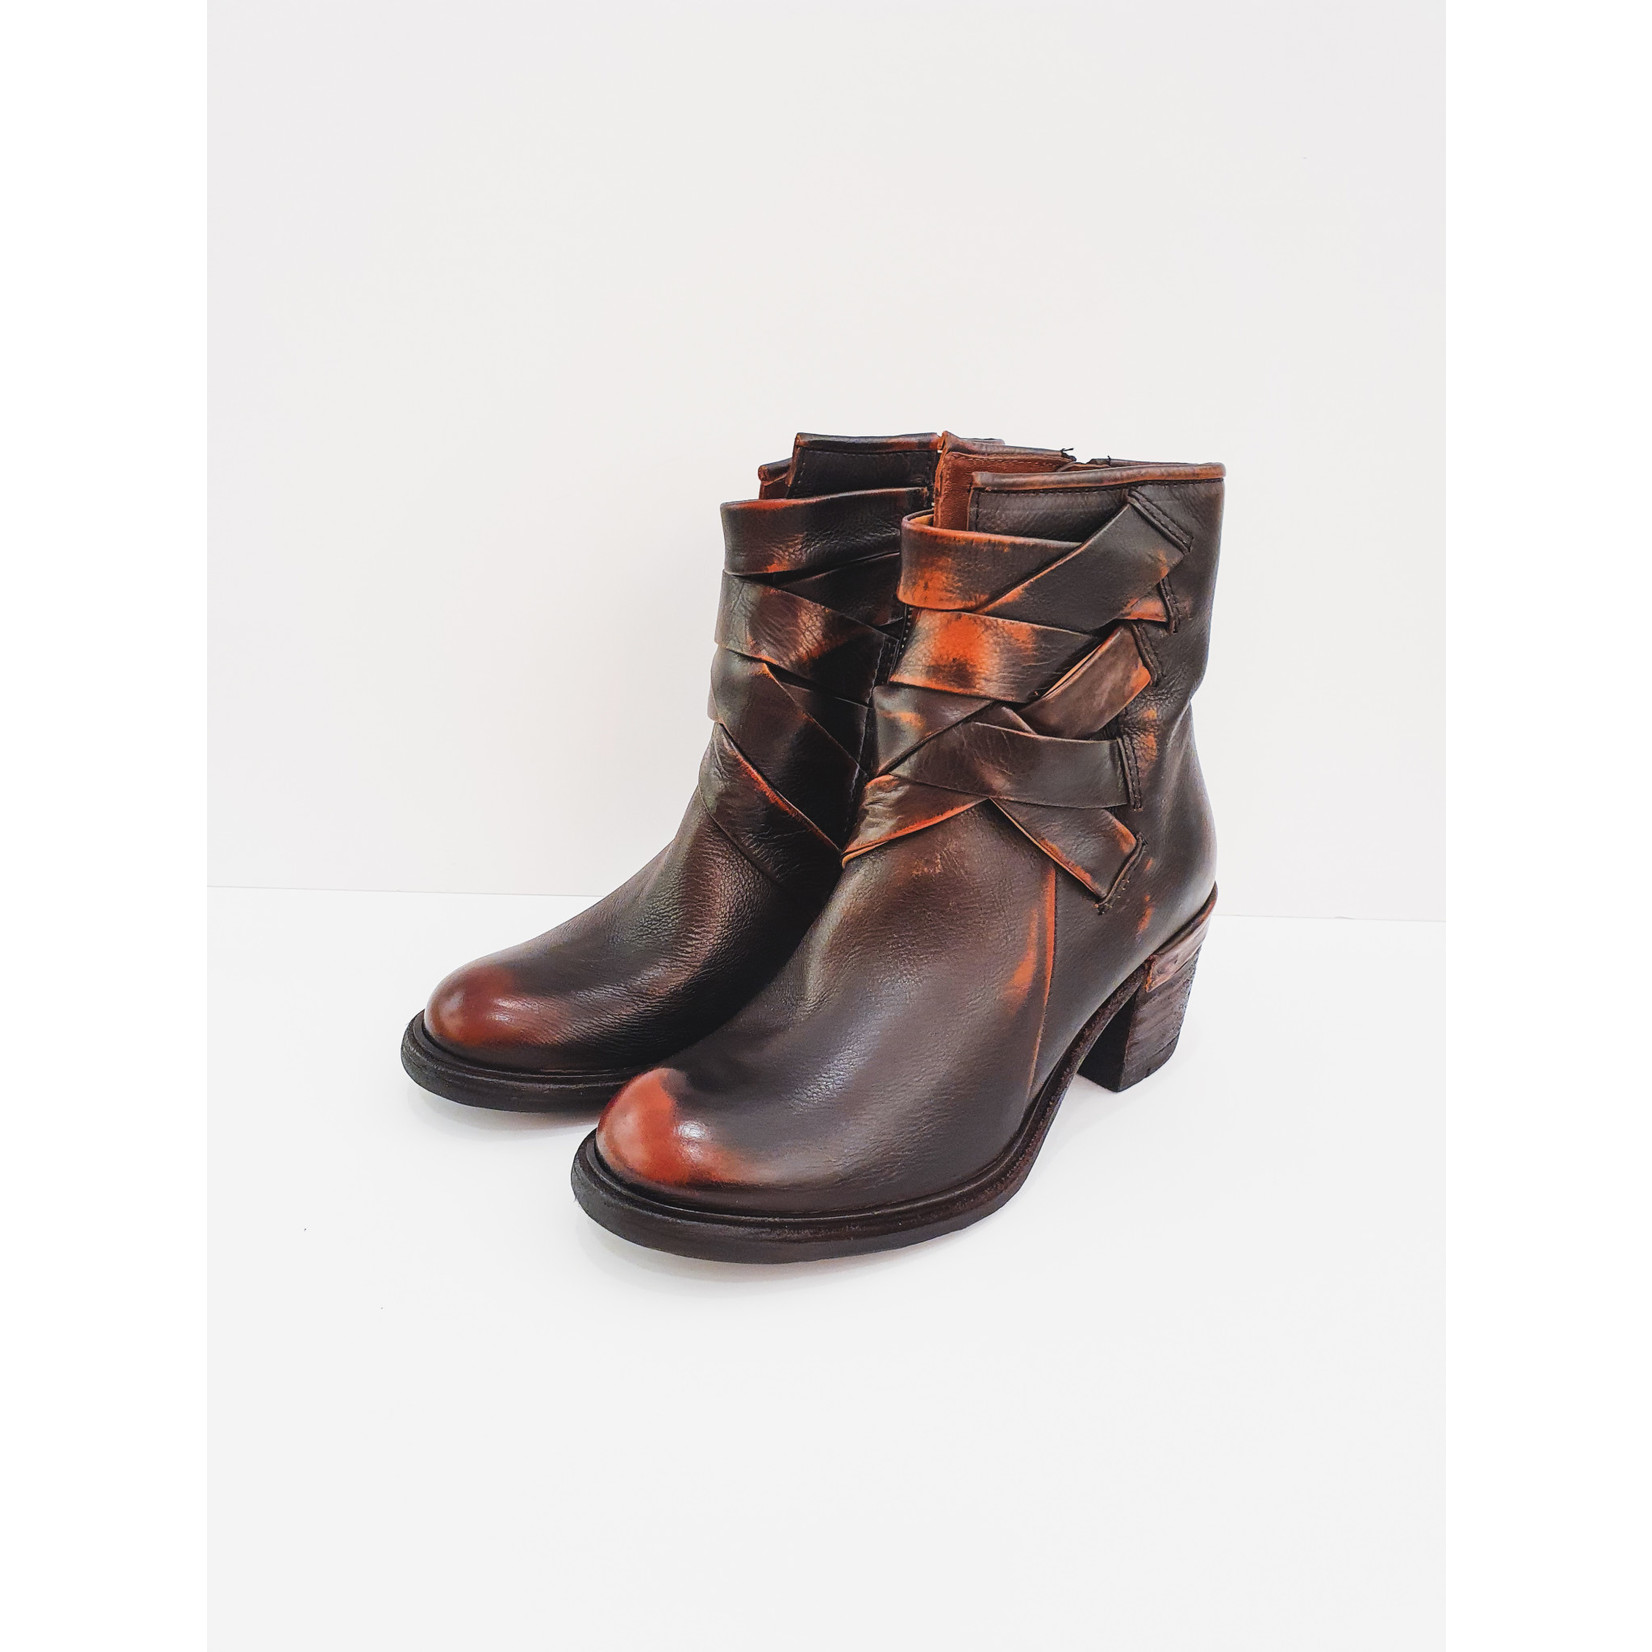 Copper Glow boots